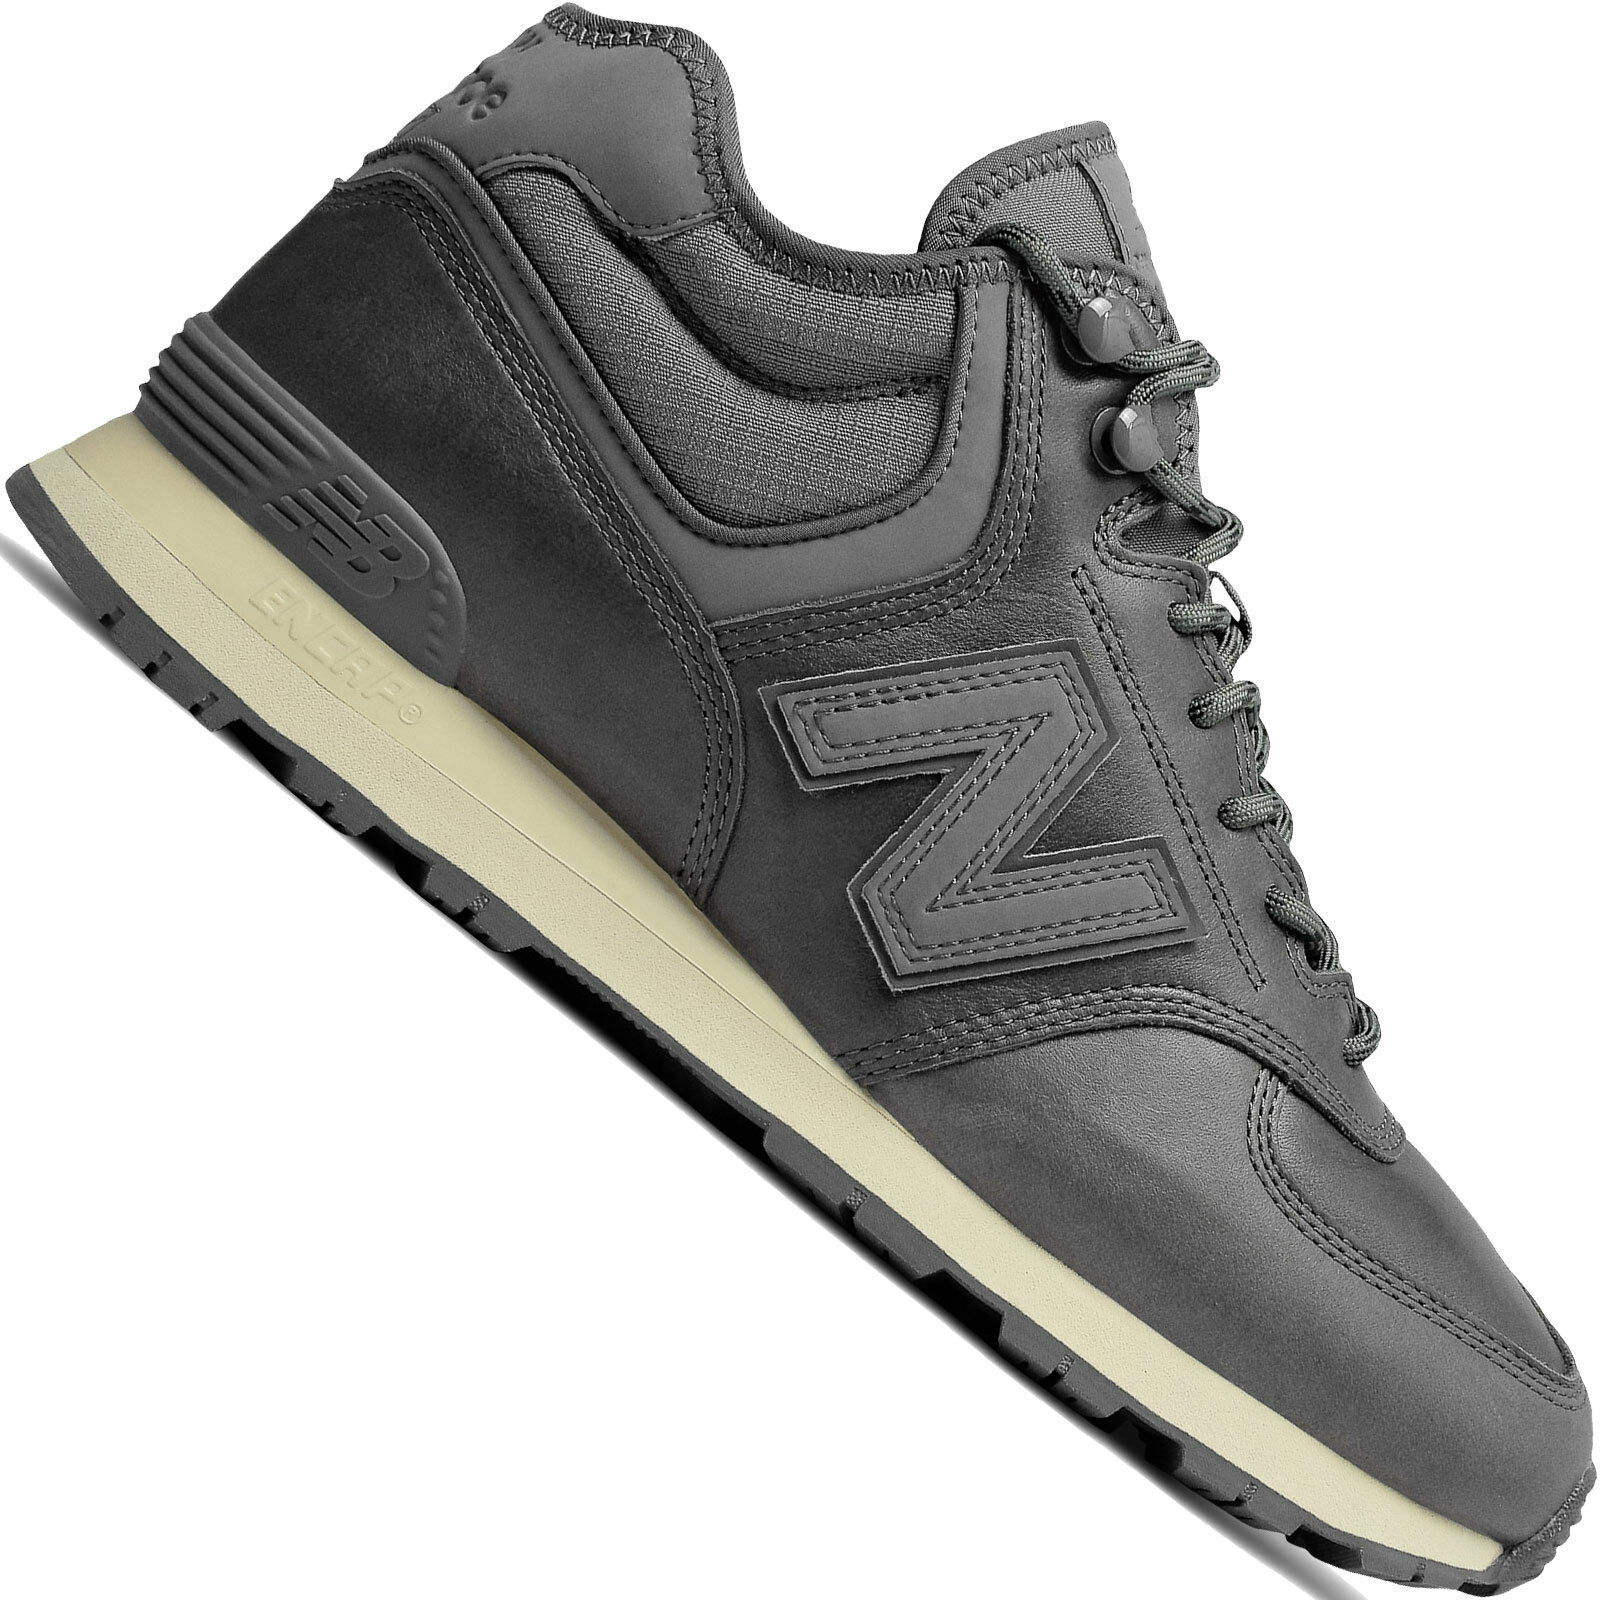 New Balance Balance Balance 574 Metà pelle shoes Inverno men da Ginnastica in Hi-Top Nuove 544d16